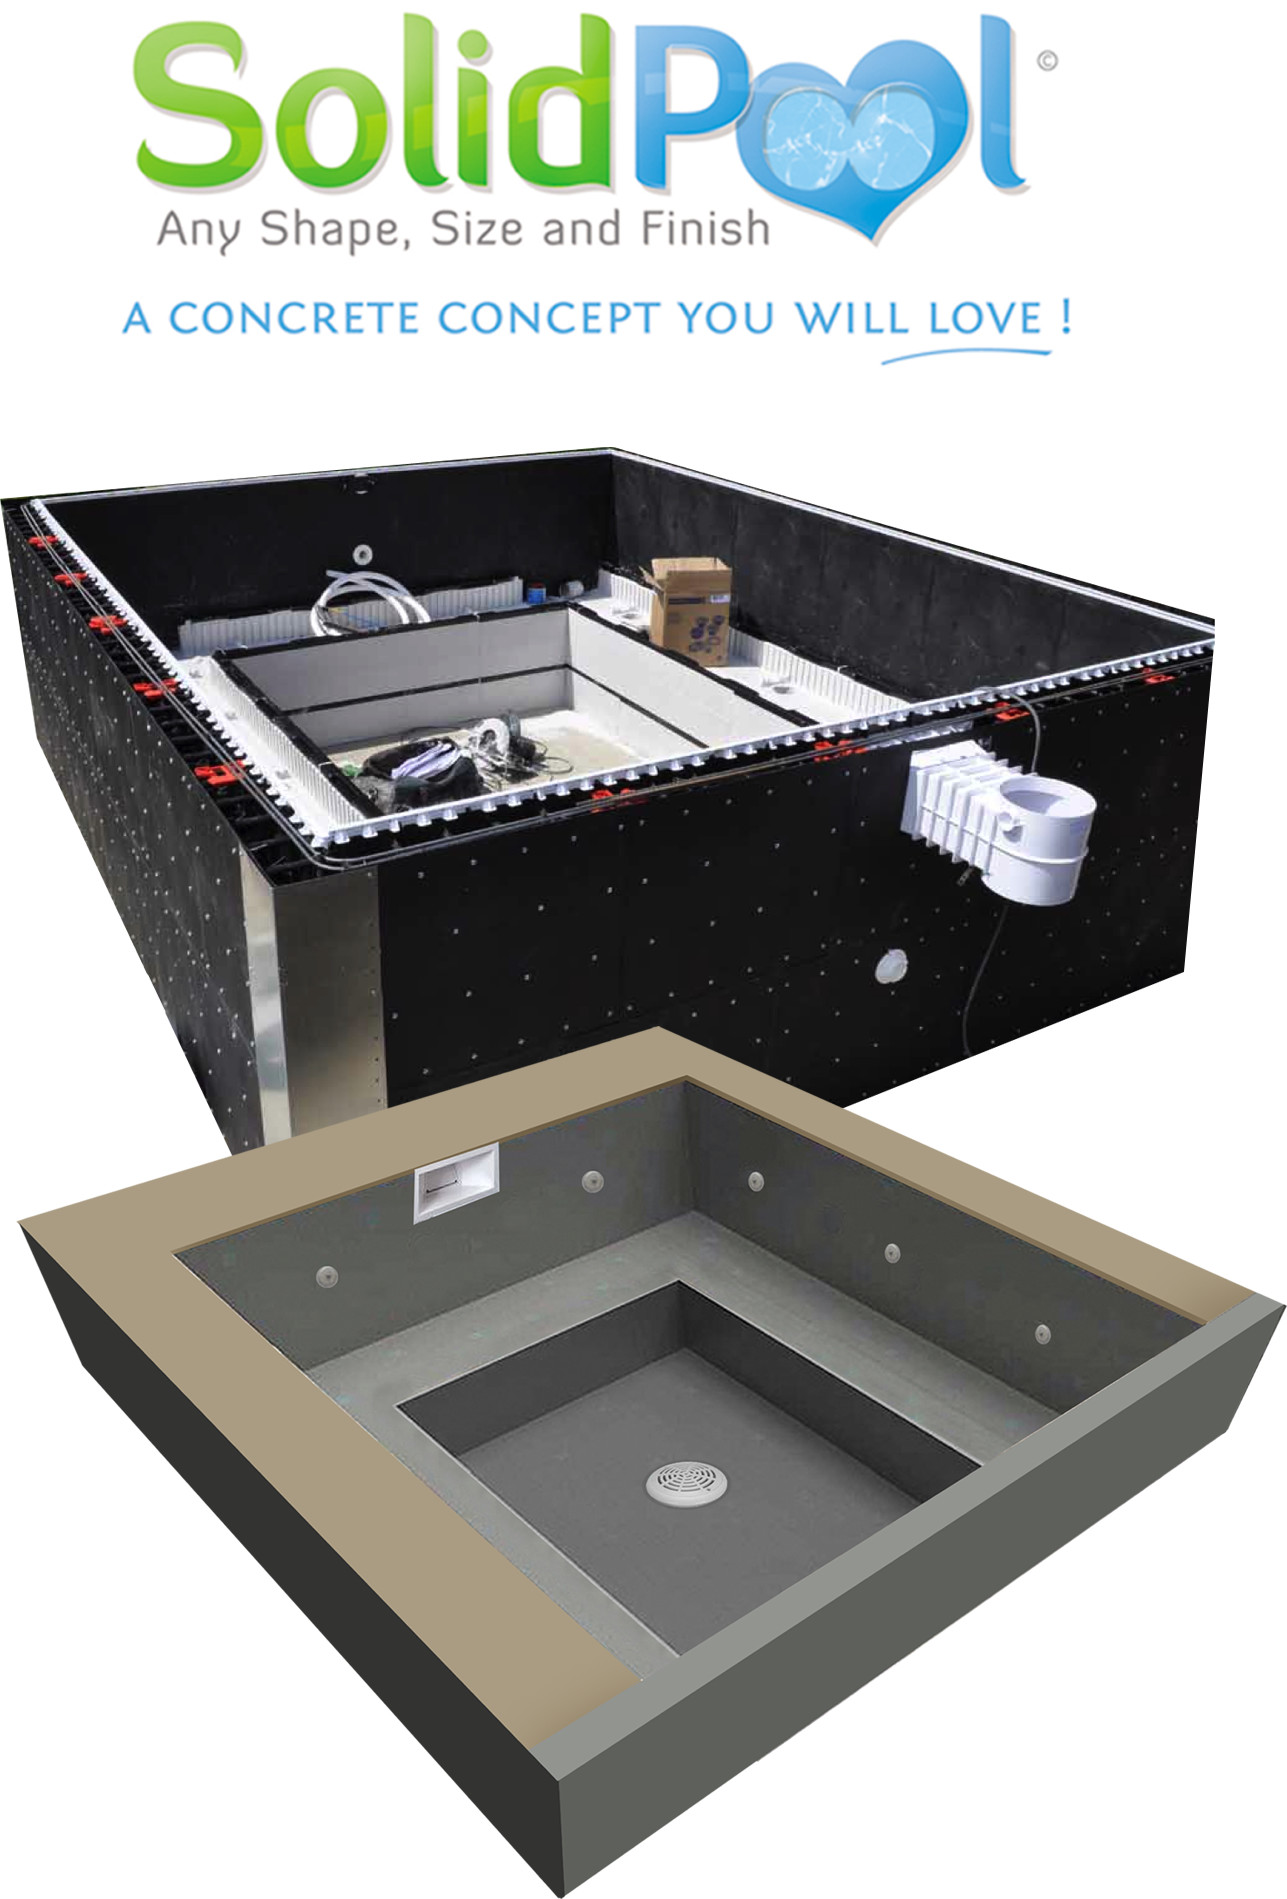 hight resolution of please get in touch so we can discuss your requirements and put together a package to create your dream hot tub